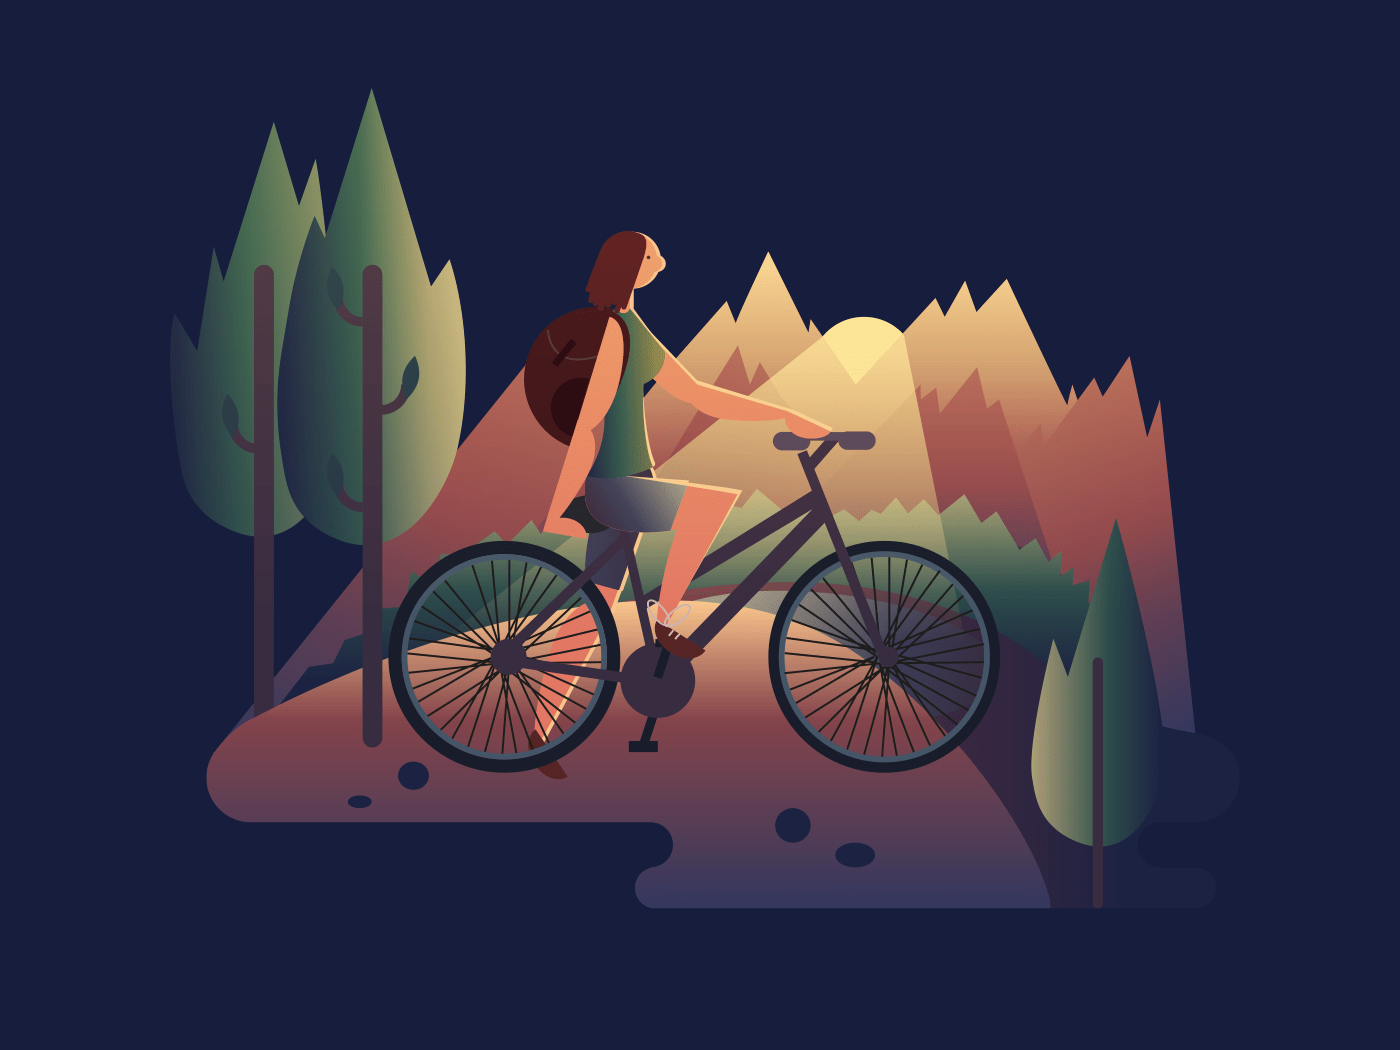 Girl on bicycle at sunset illustration